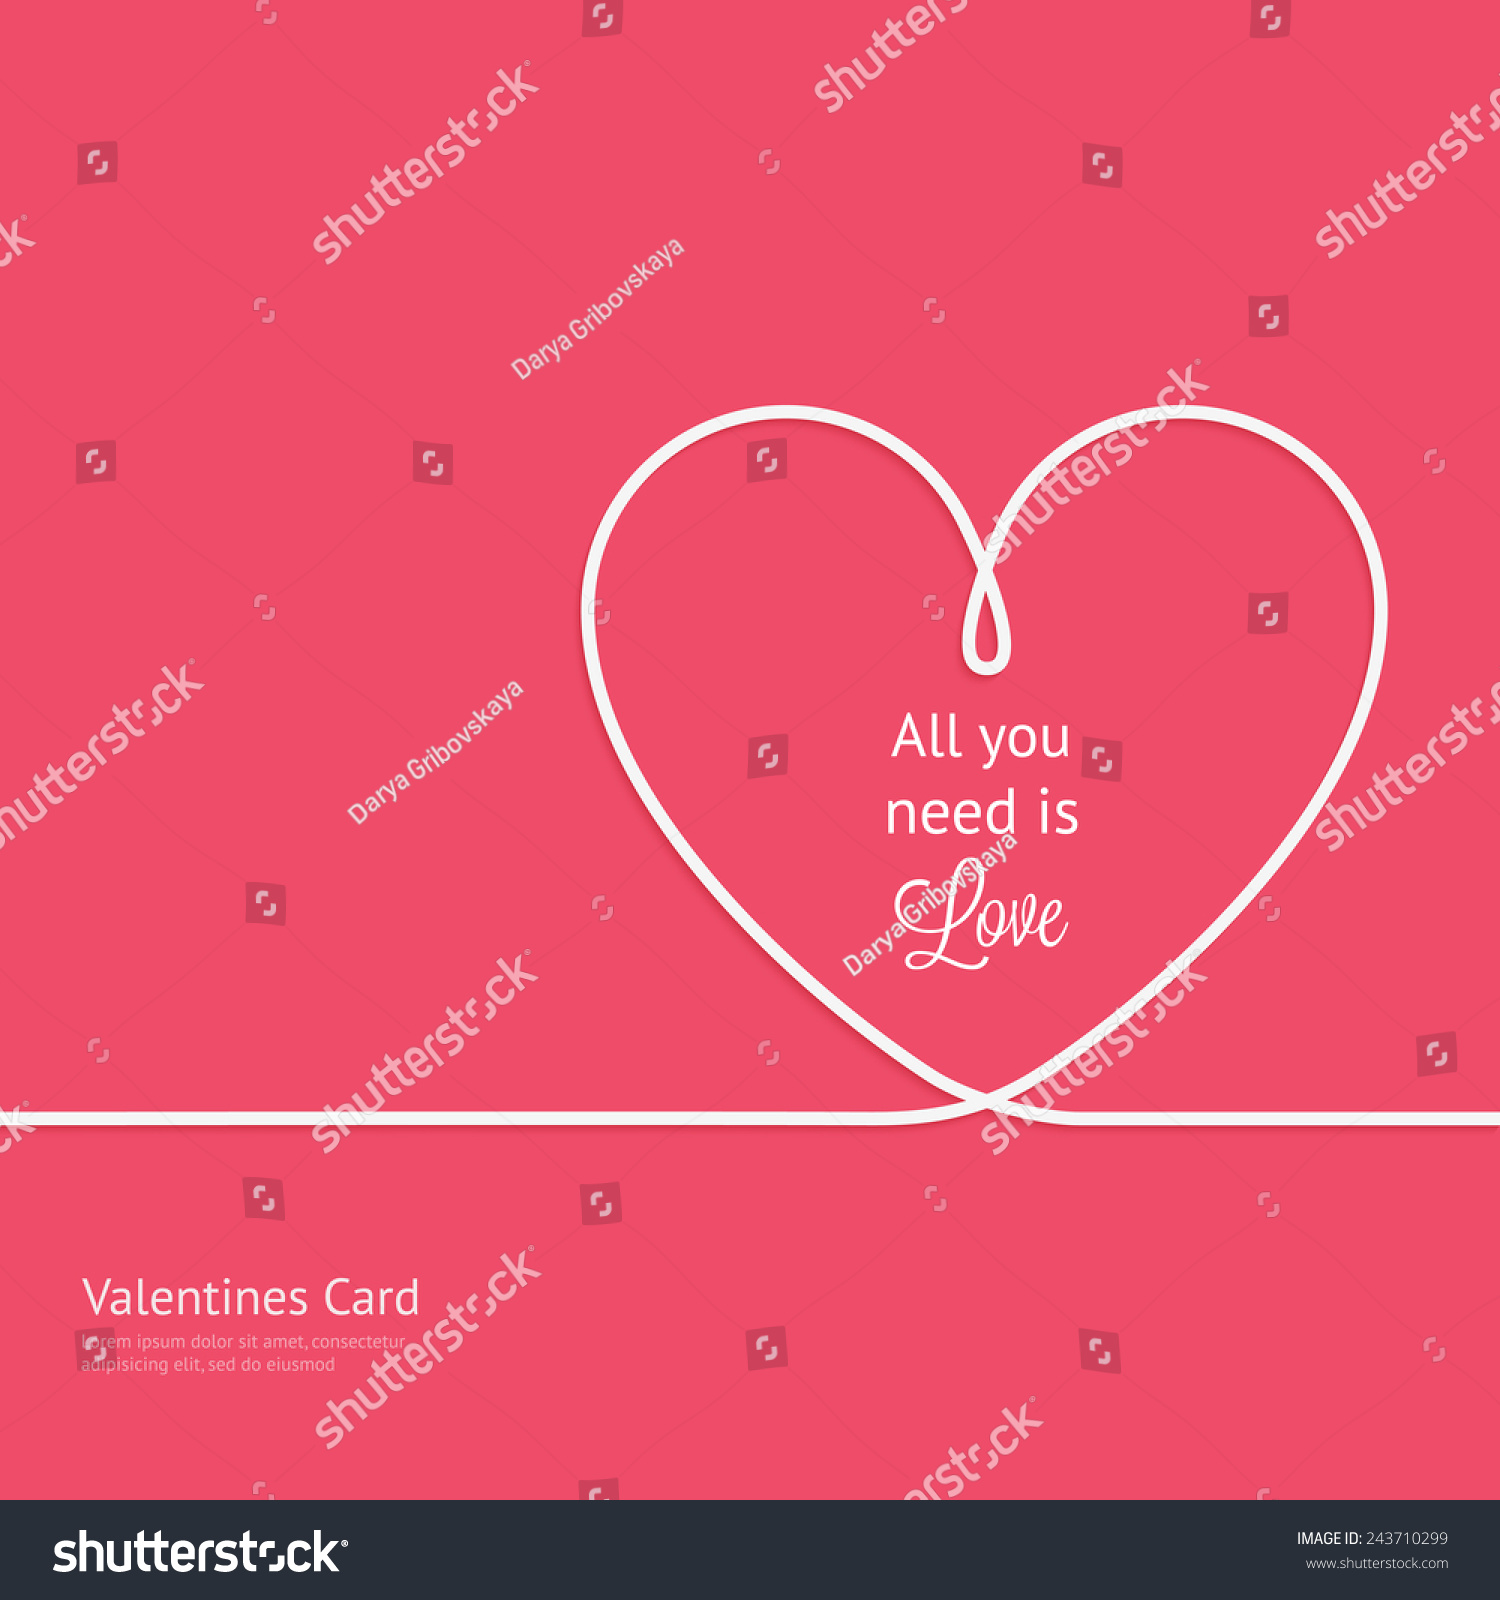 Valentines Card Line Heart All You Stock Vector 243710299 ...